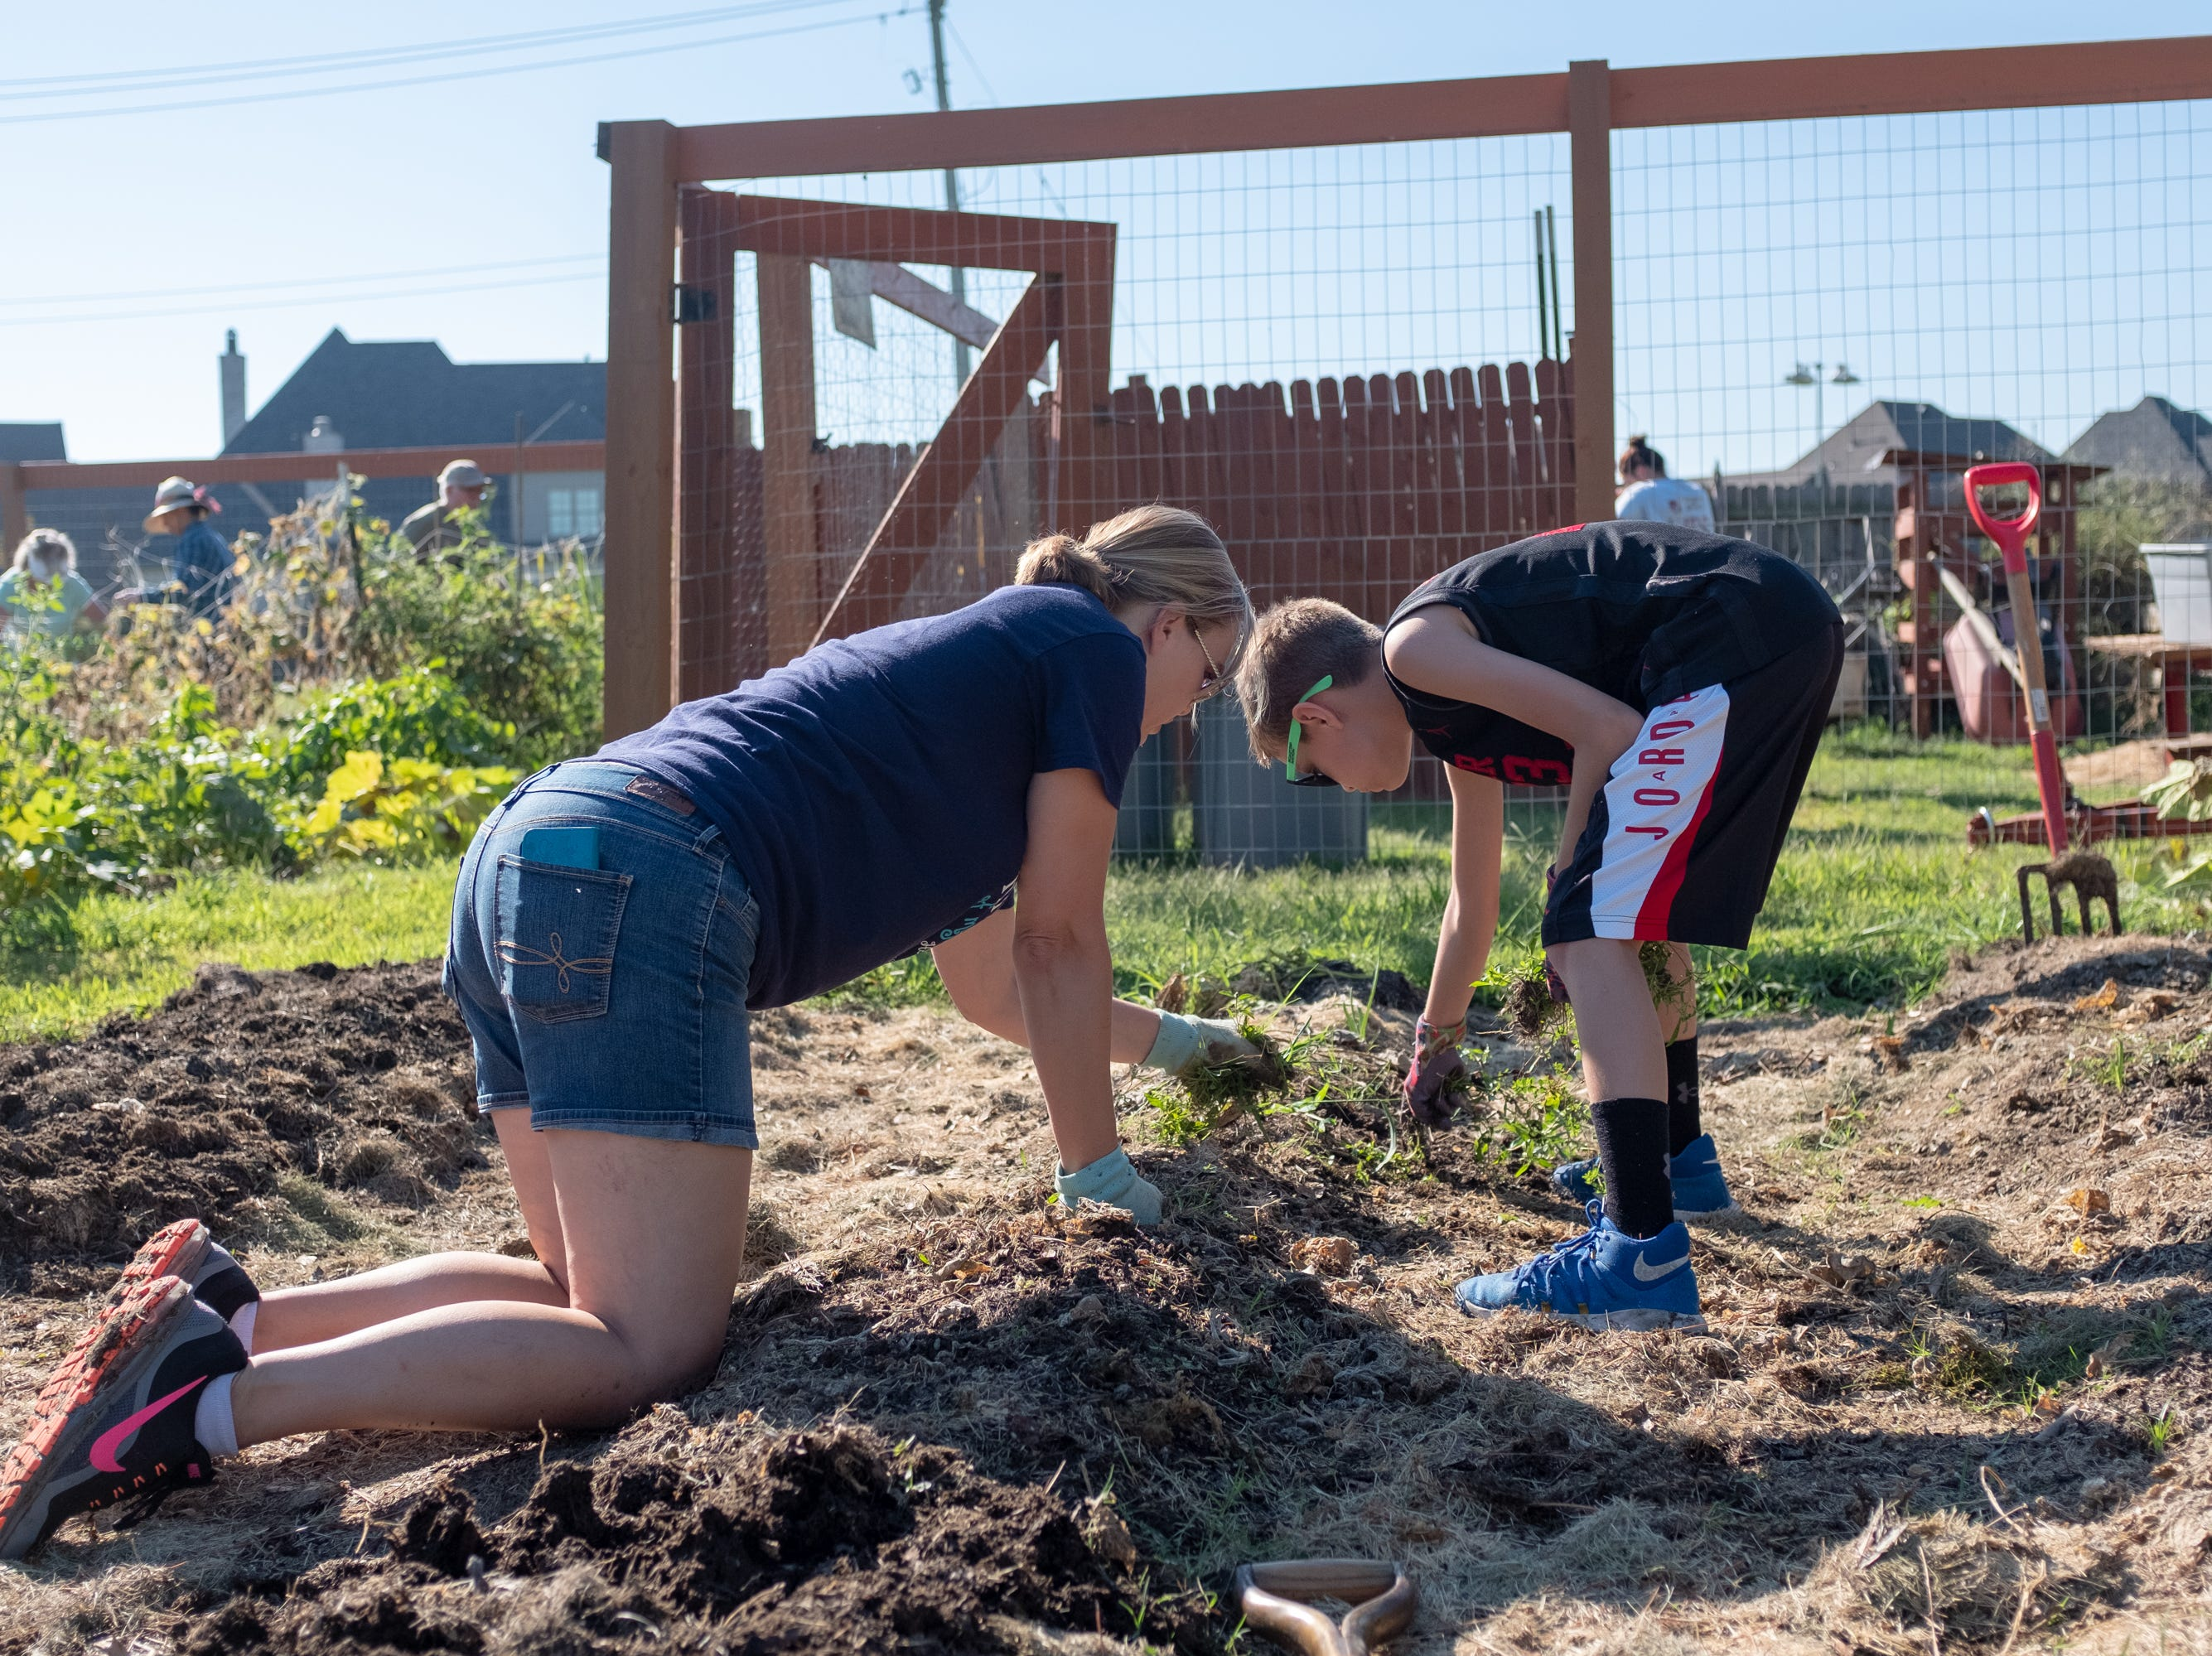 Andria Prouty and her son Andrew clear old plants in the Epihpany Community Garden in Collierville on Saturday, Sept. 15, 2018.